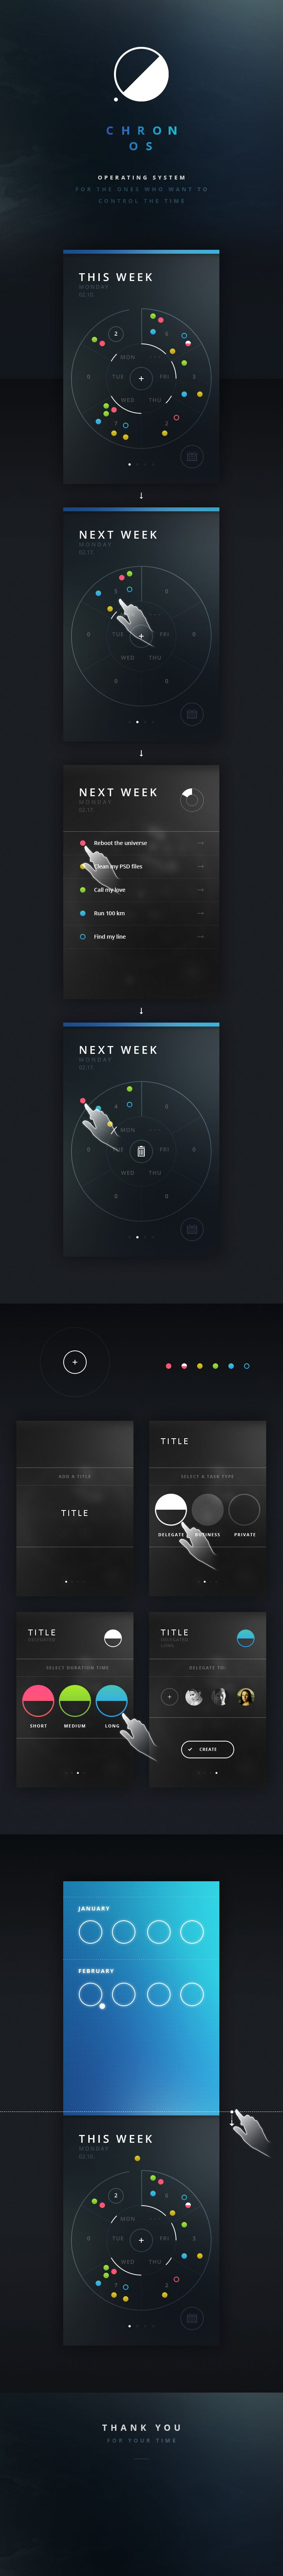 Chronos - app design